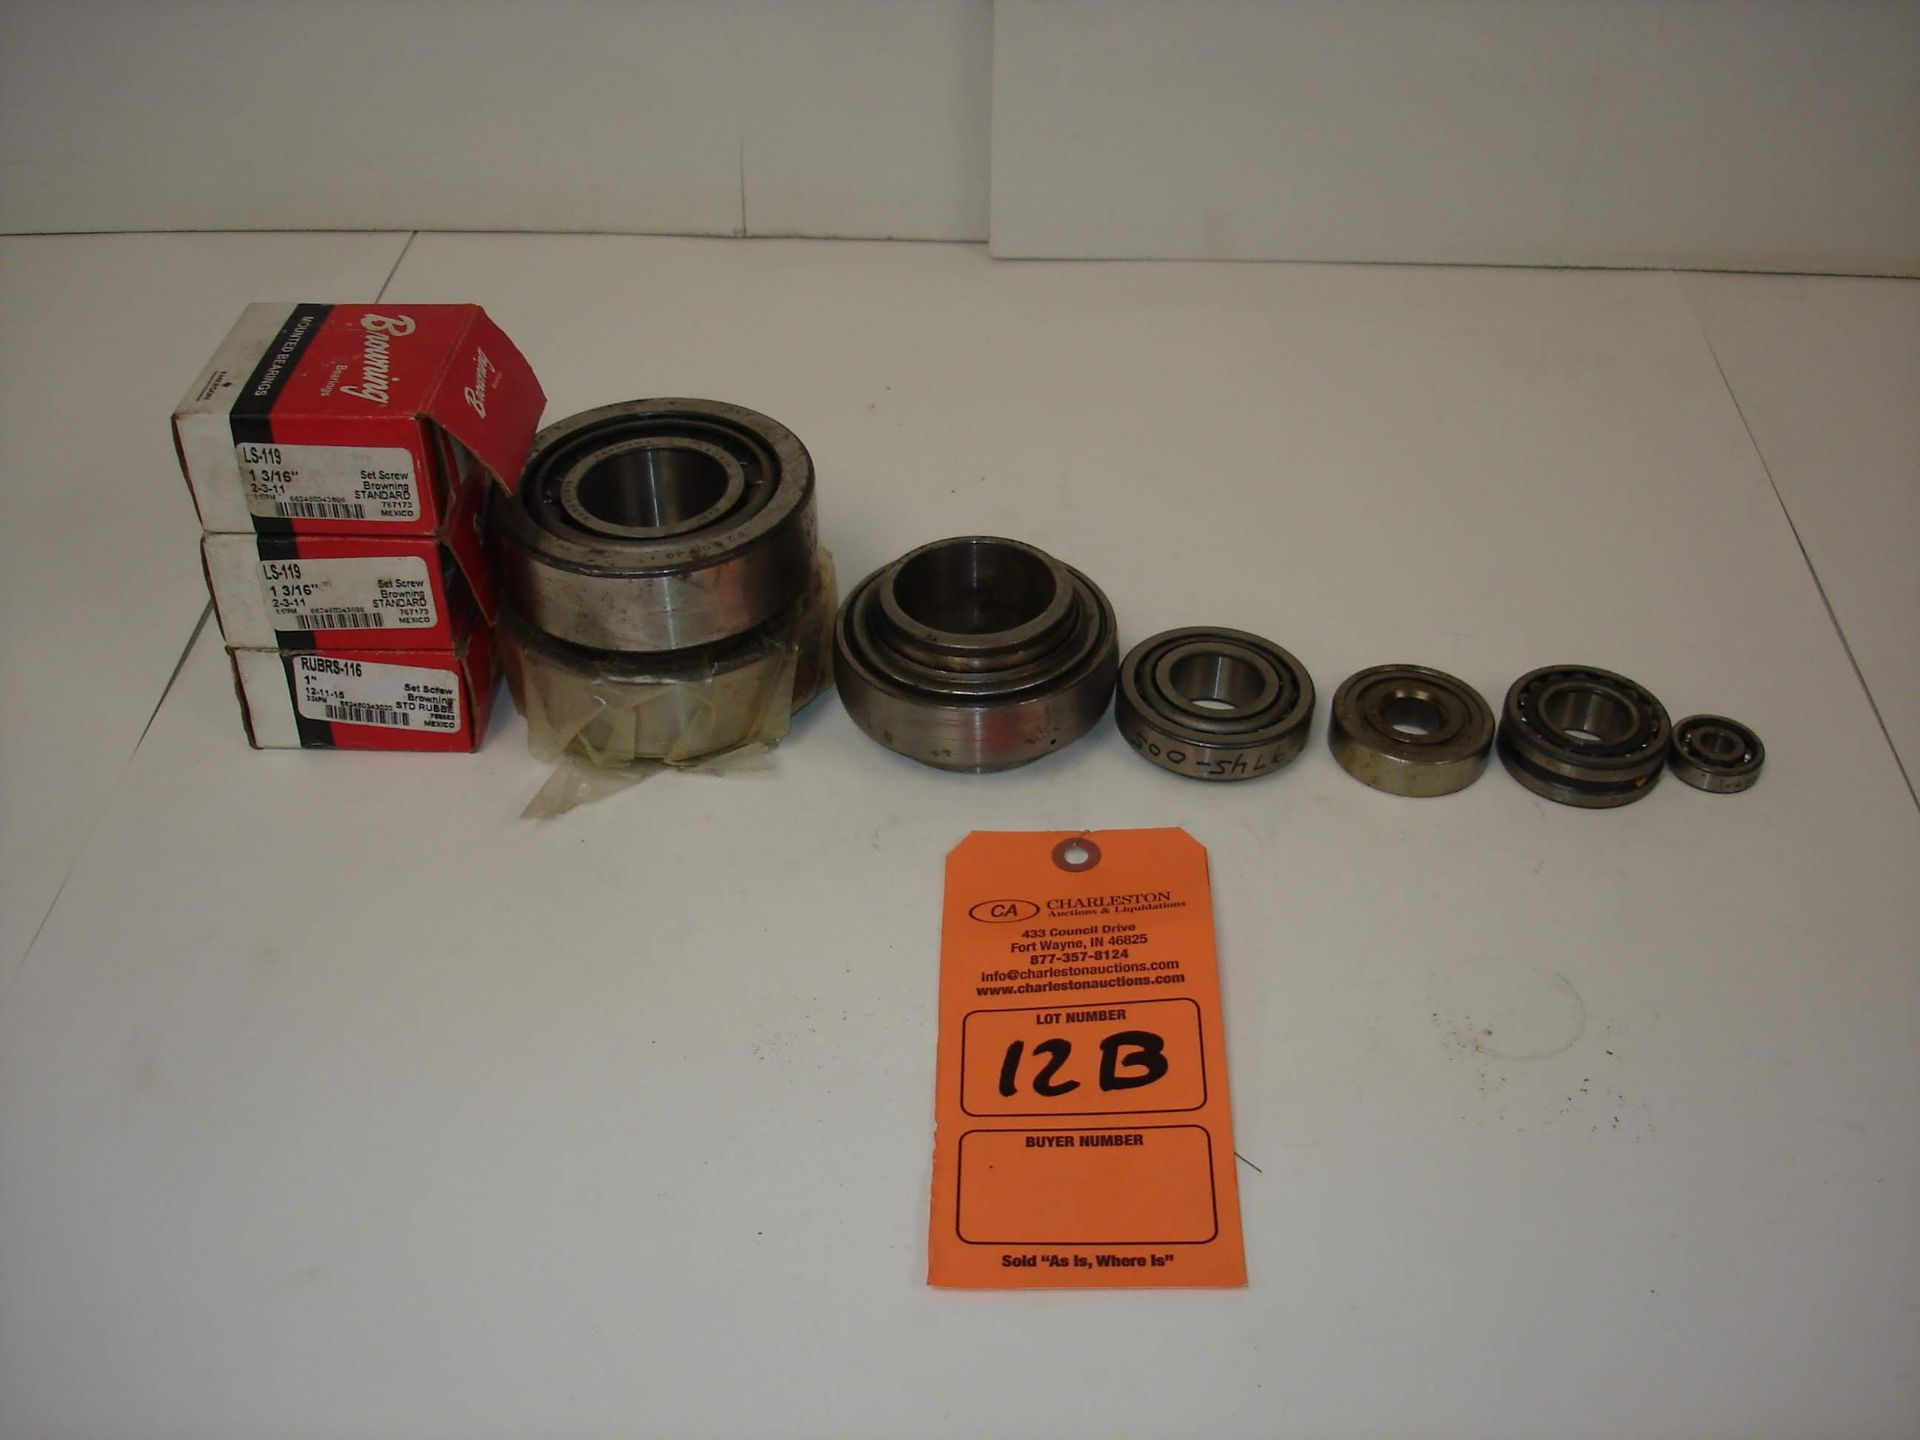 Lot 12B - (10) MISC BRANDED BEARINGS AND MORE: BROWNING LS-119 AND ALL OTHER ITEMS INCLUDED IN PHOTOS!